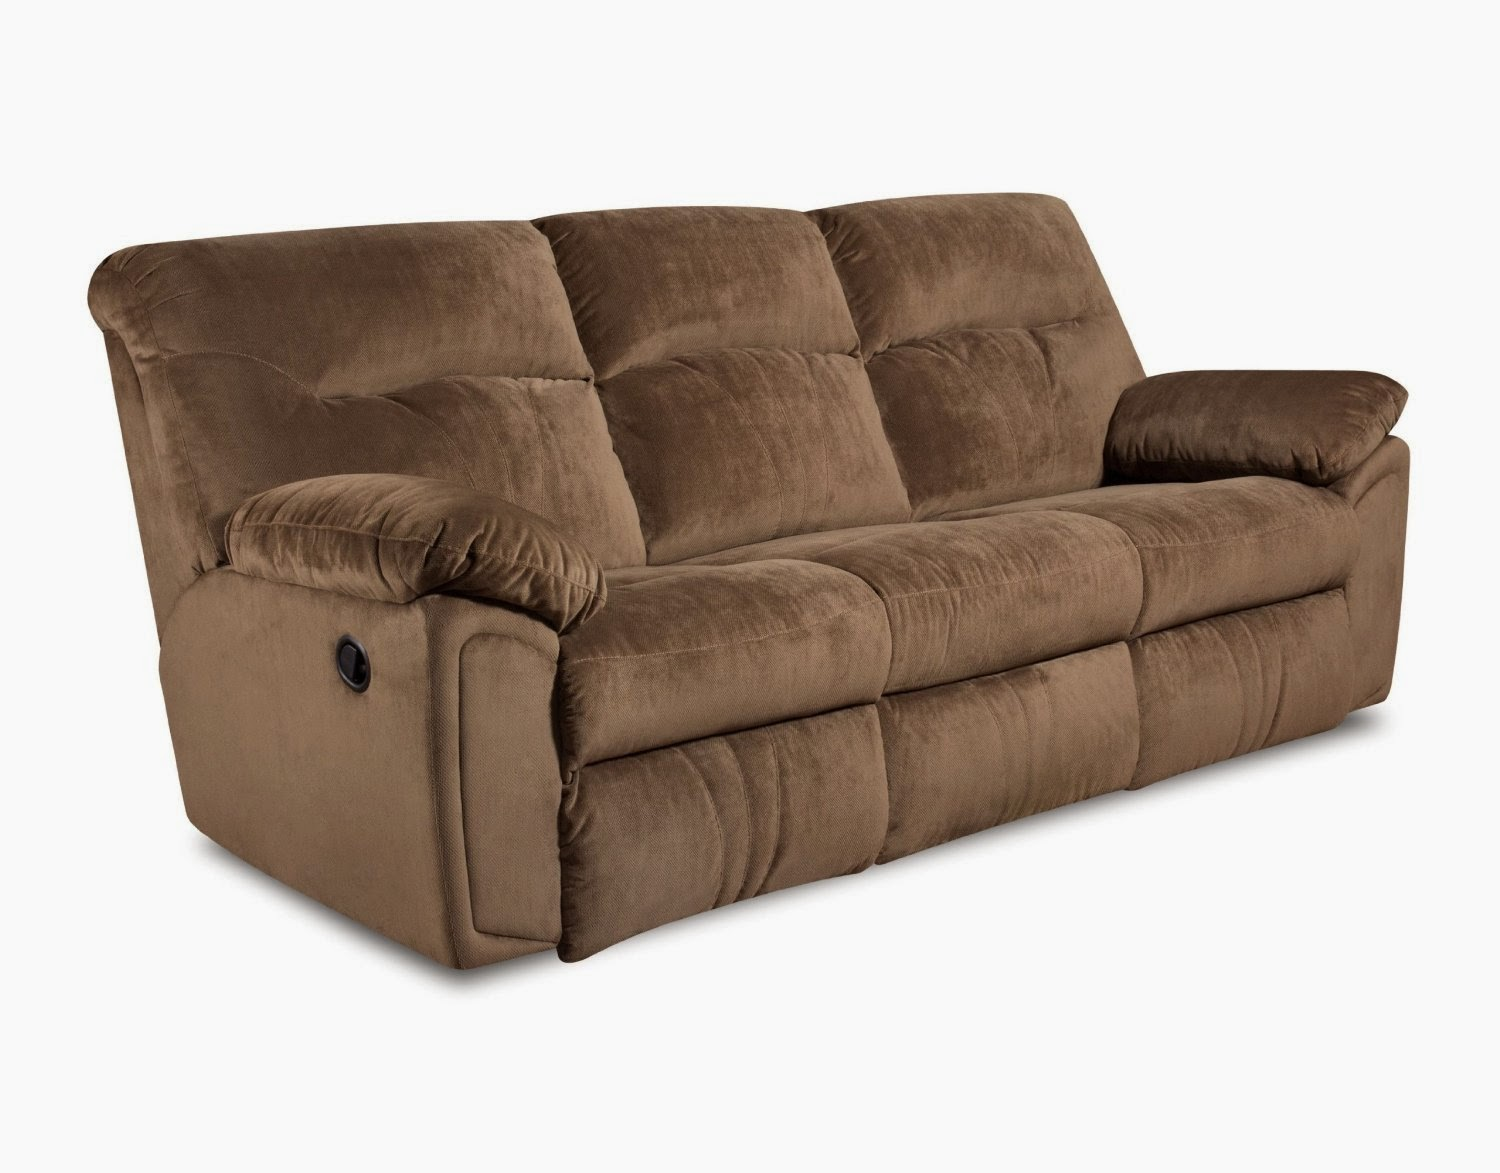 Reclining sofa loveseat and chair sets southern motion reclining leather sofa Leather sofa and loveseat recliner